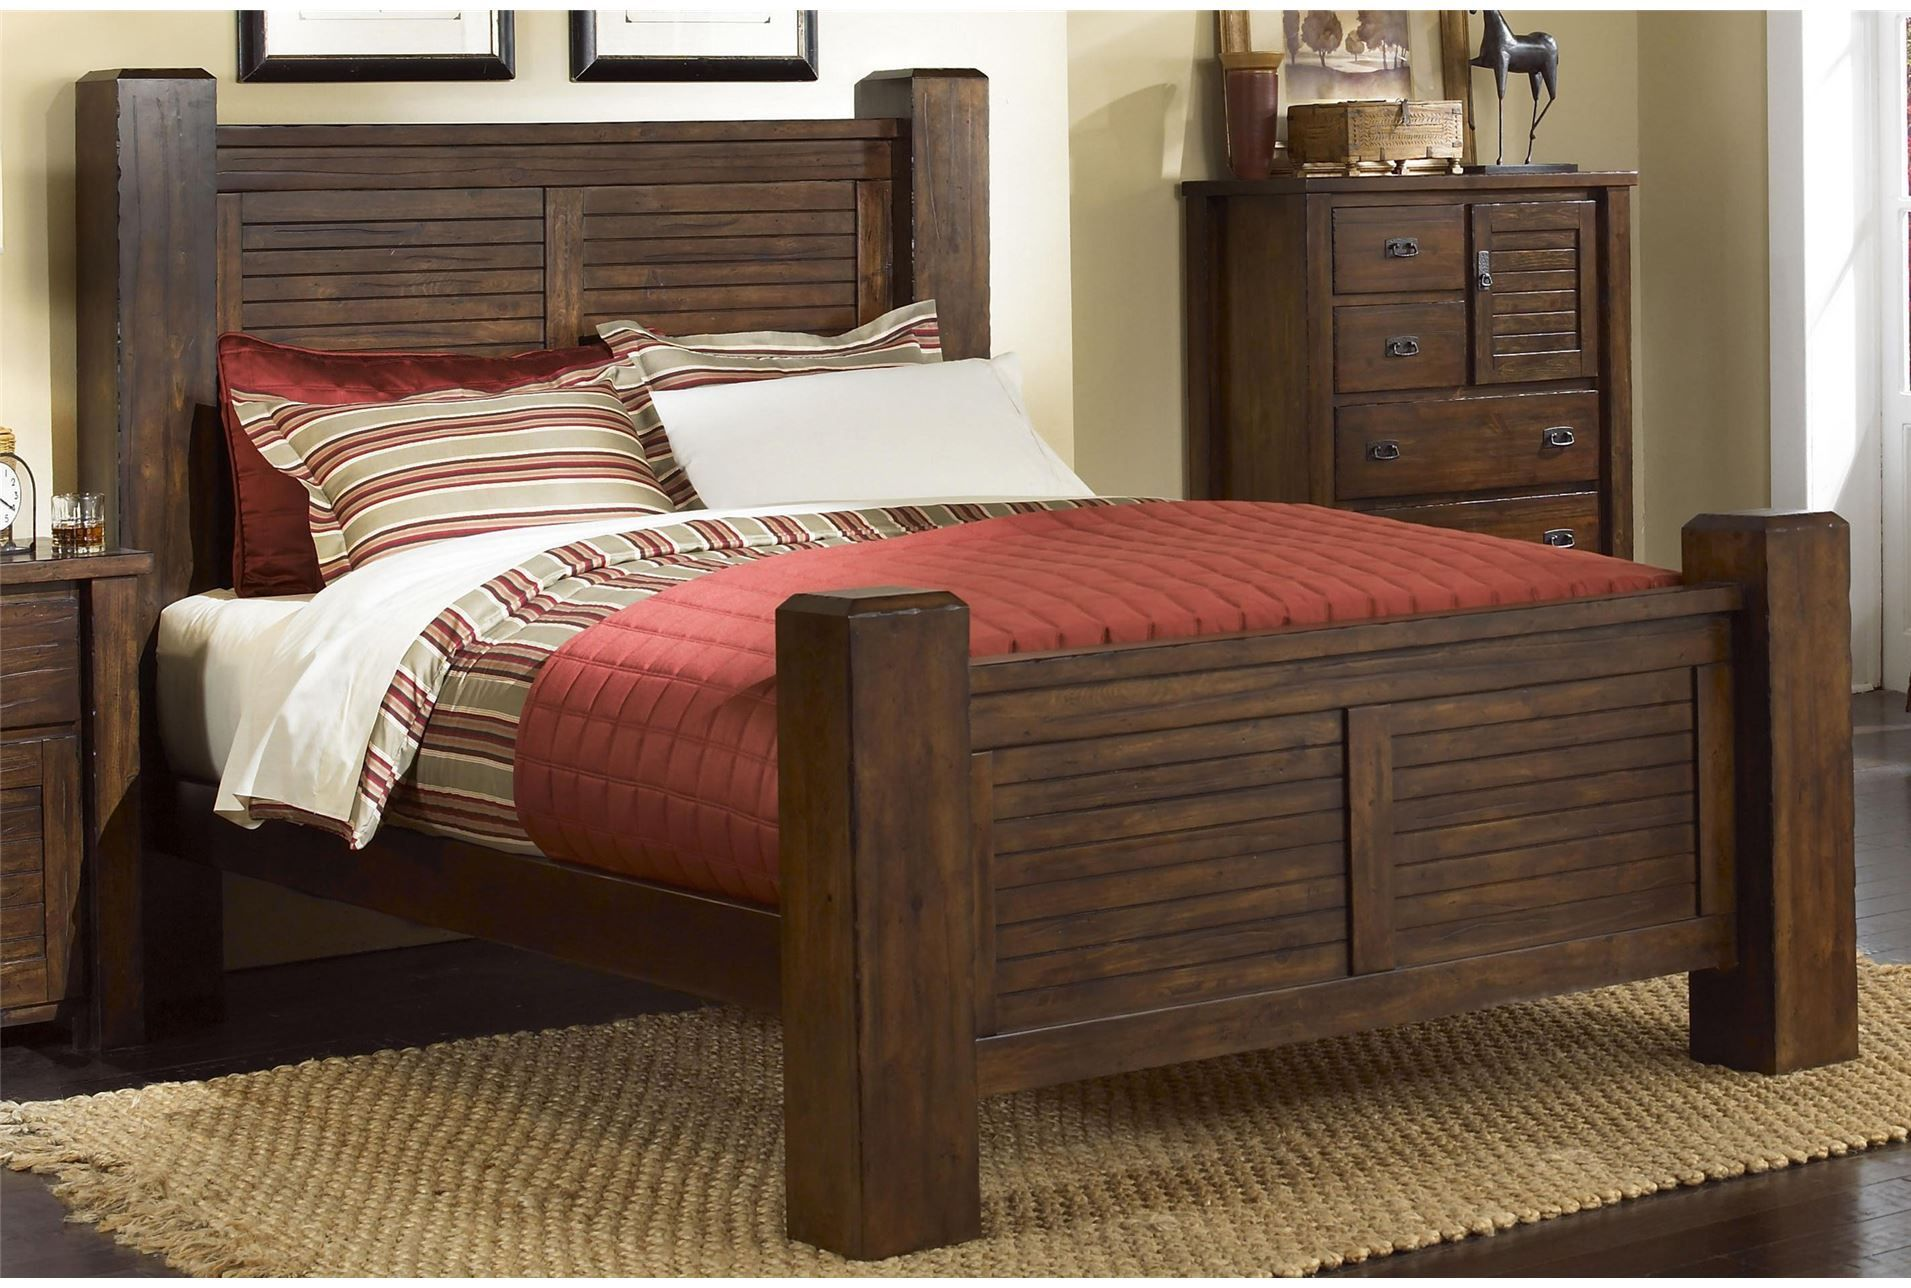 Canyon Queen Poster Bed at Living Spaces | Furniture | Pinterest ...